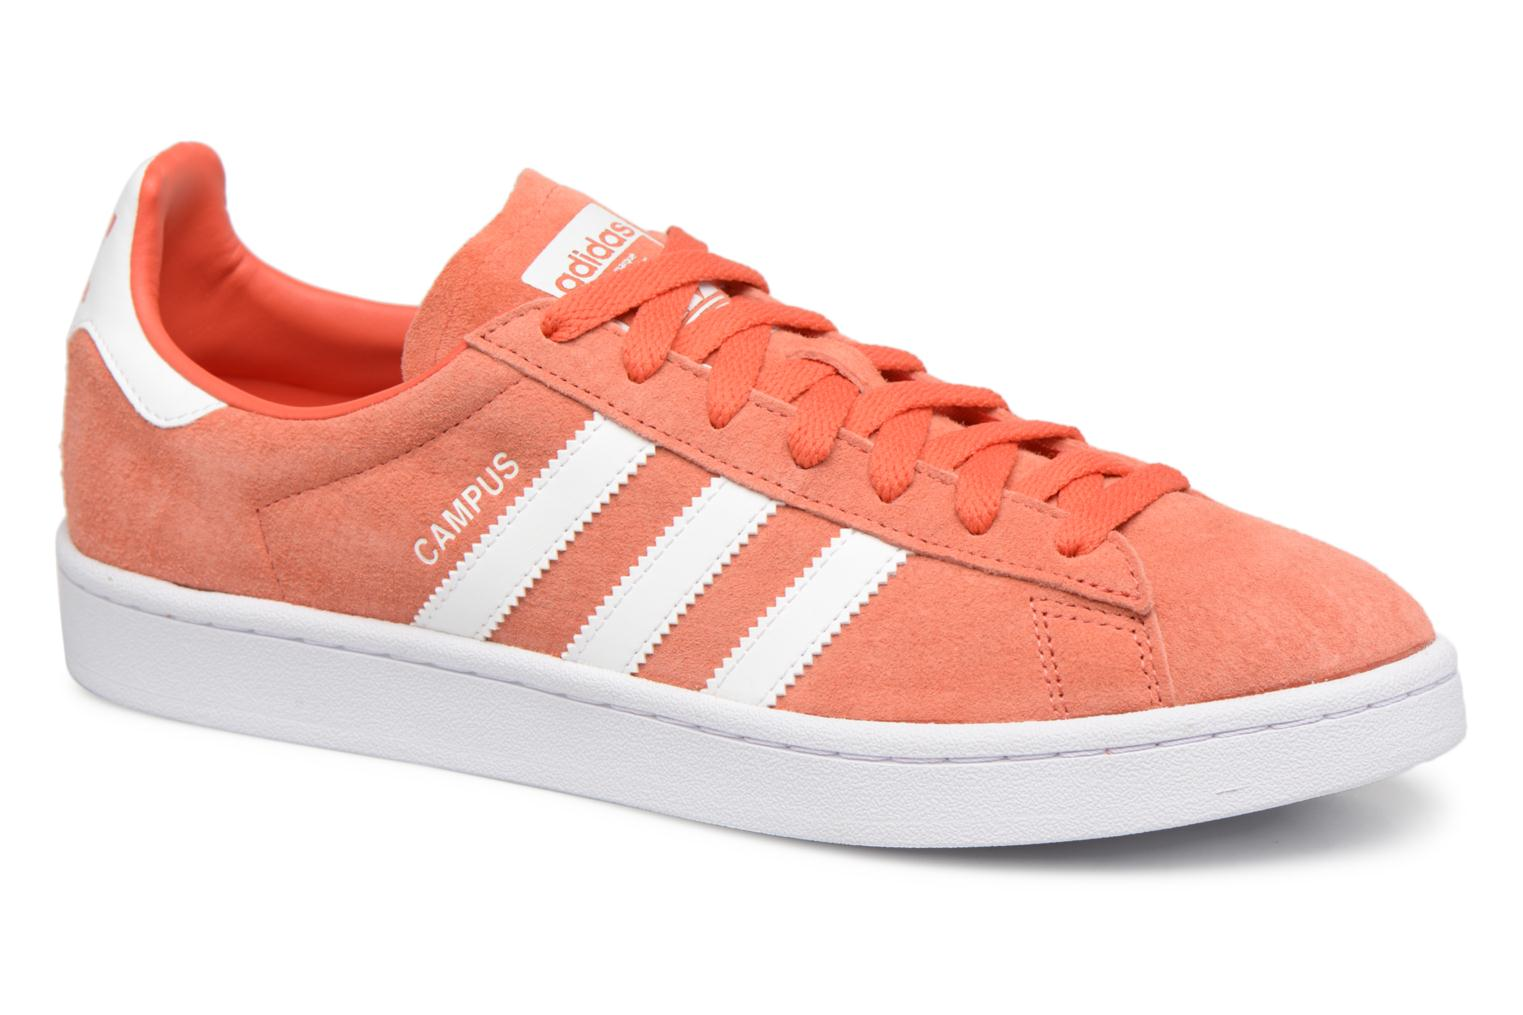 Sneakers Adidas Originals Rood